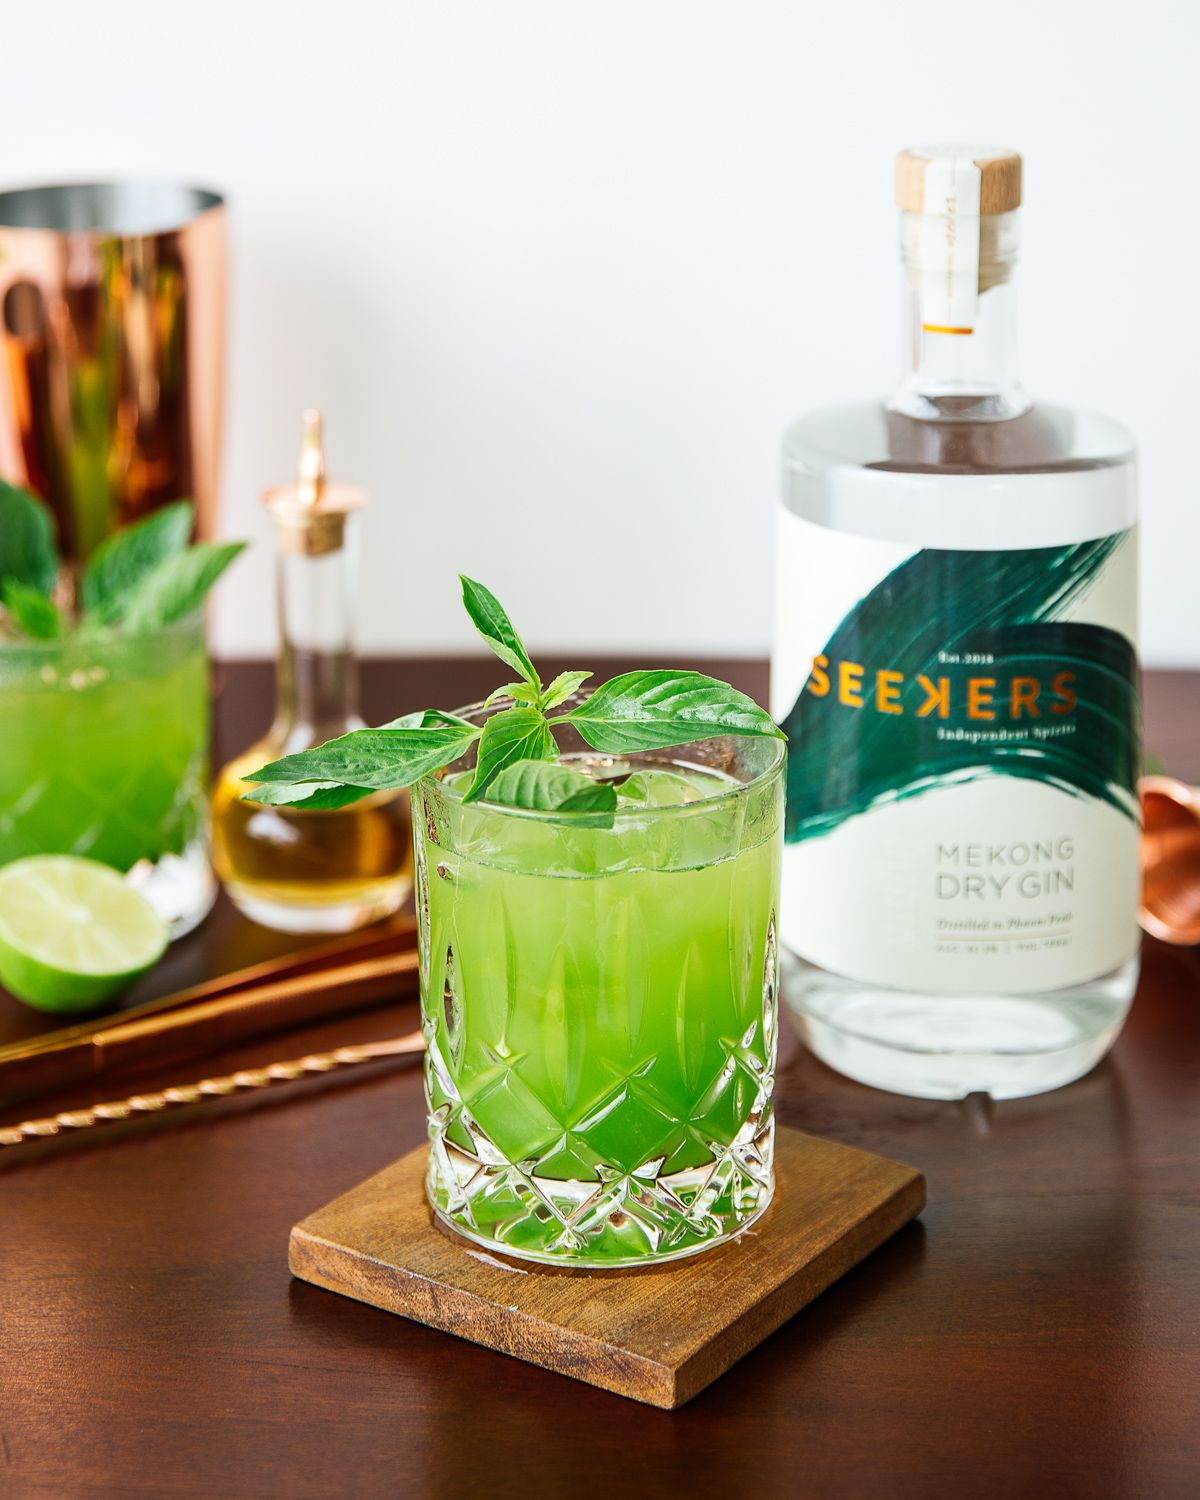 Basil Smash - Bright and zesty. Packed full of vibrant fresh local herbs.50ml Seekers Mekong Dry Gin25ml Lime Juice25ml Sugar SyrupHandful Khmer BasilMuddle the Khmer Basil in a cocktail shaker with Seekers Mekong Dry Gin. Add the lime juice and sugar syrup. Shake and fine strain over a rocks glass. Add ice and garnish with fresh basil leaves.